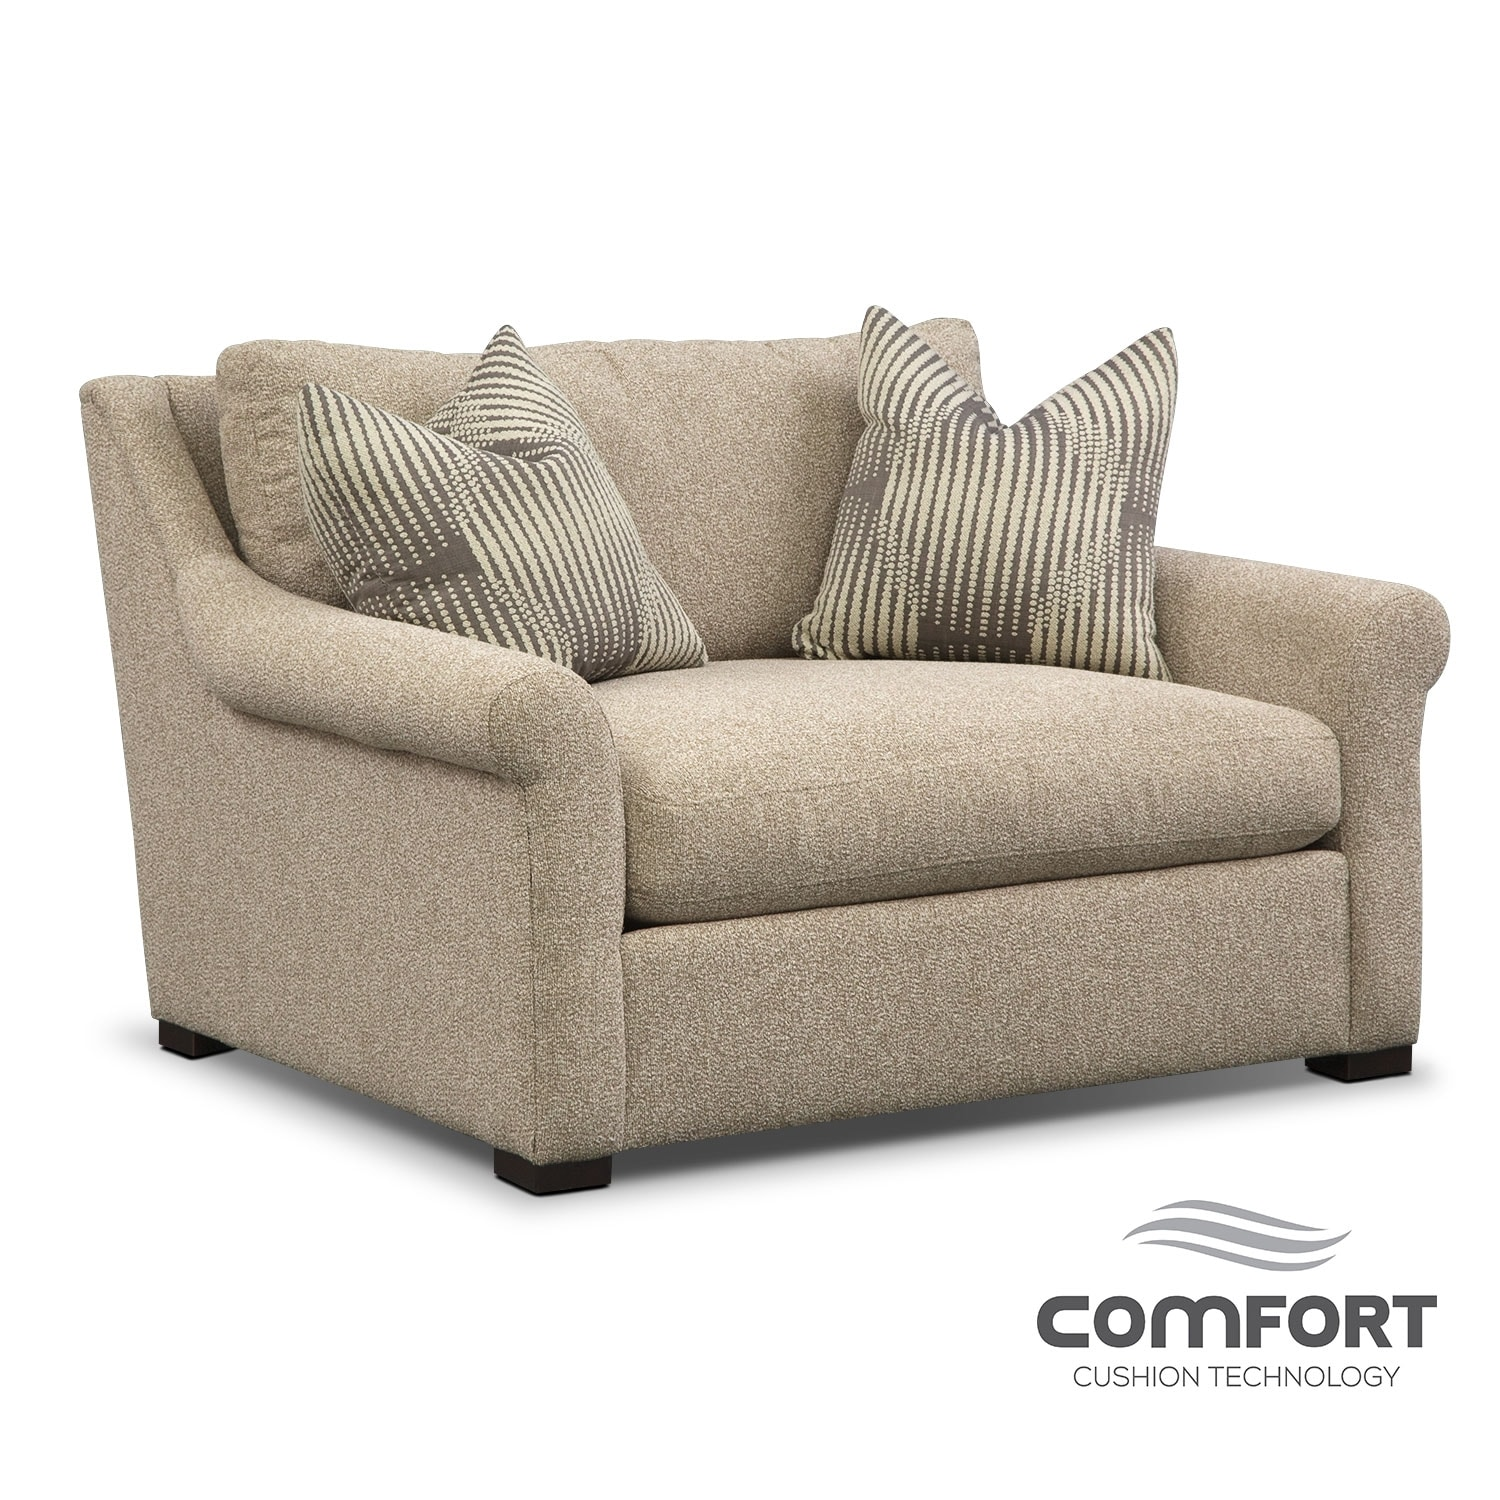 Living Room Furniture - Robertson Comfort Chair and a Half - Beige